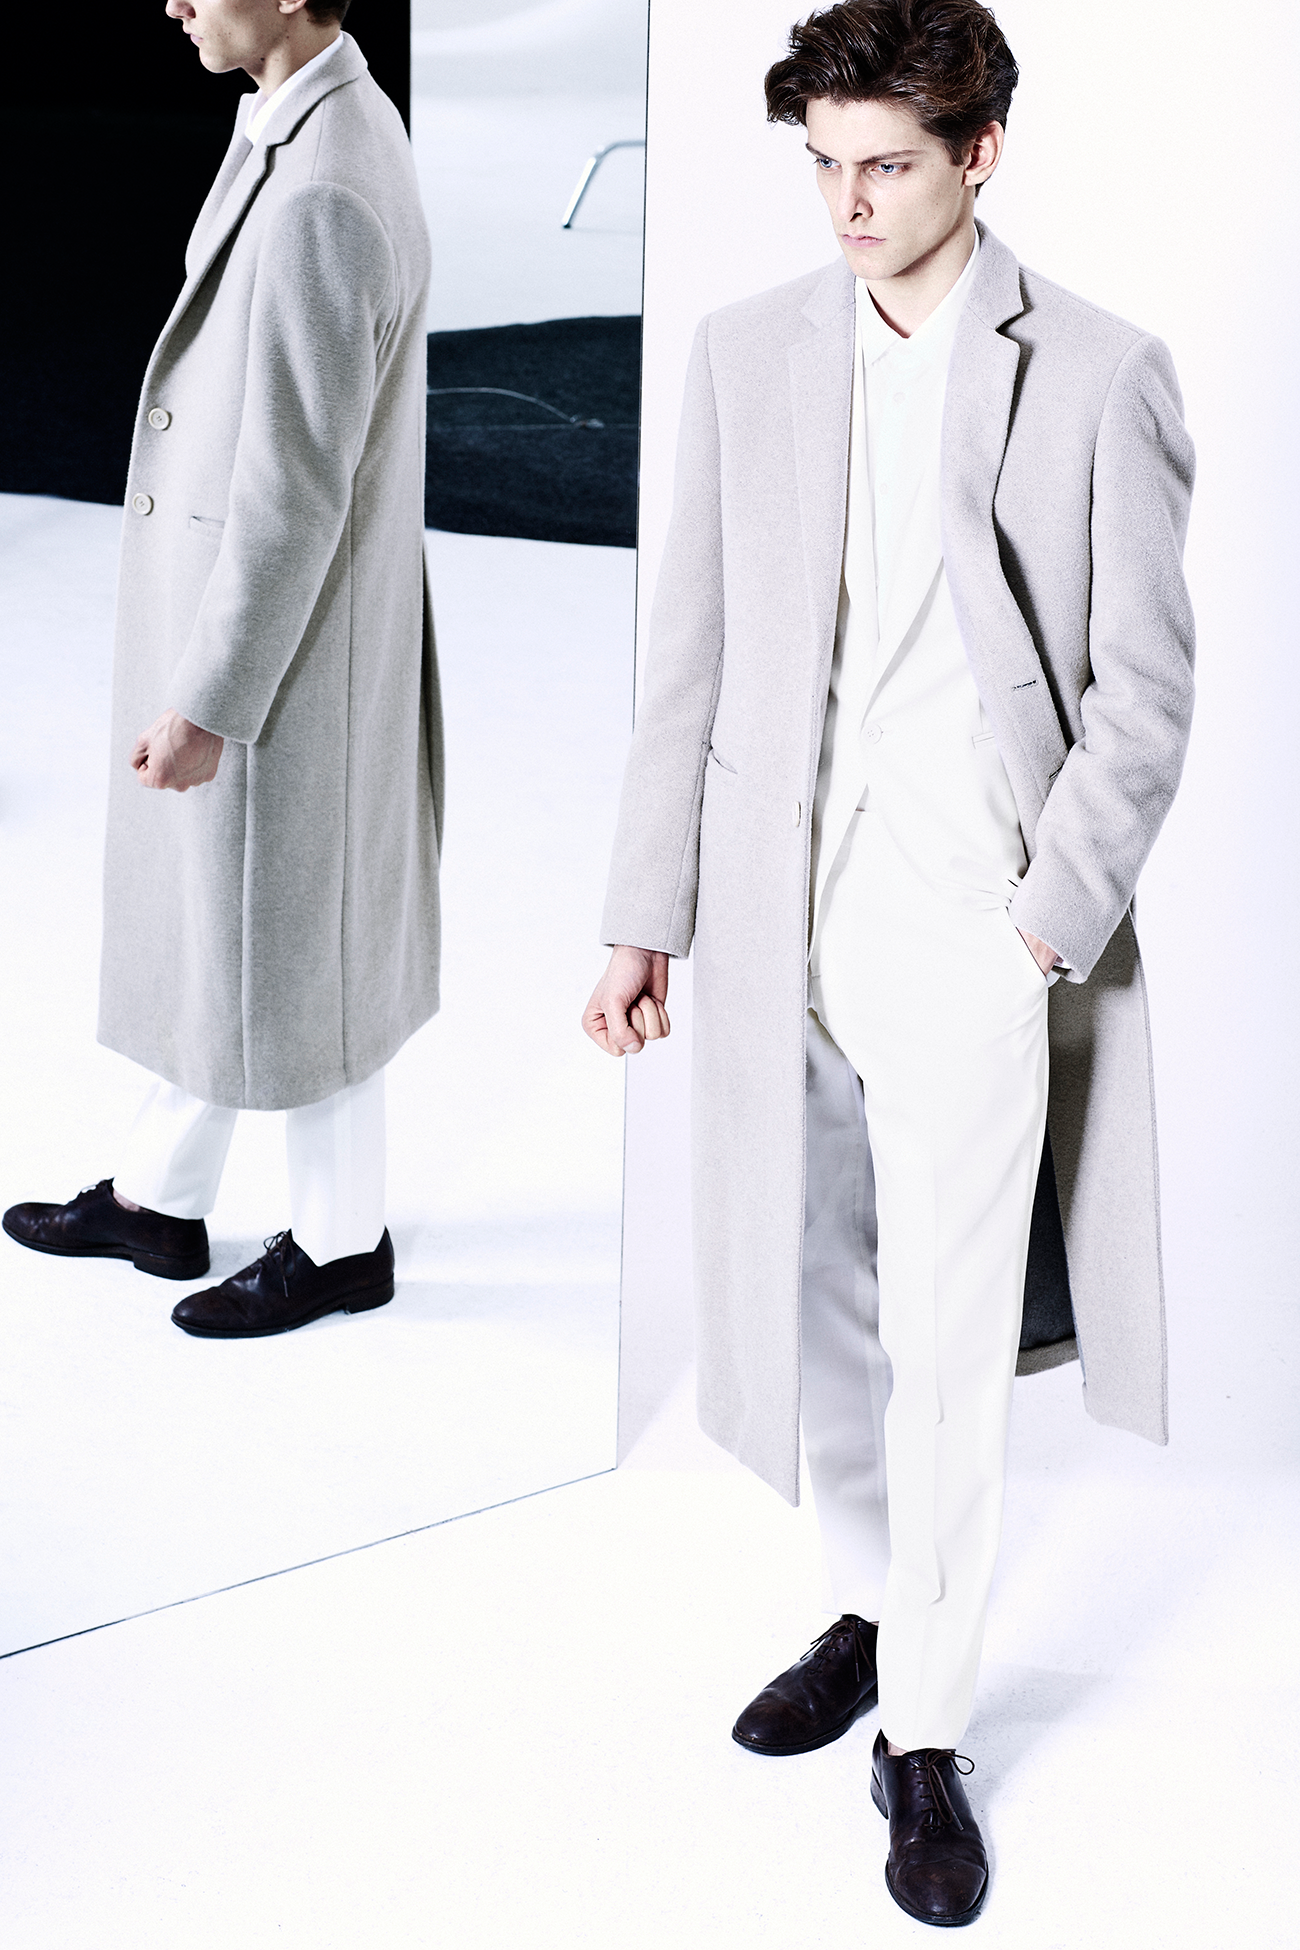 The Suits Antwerp Lookbook AW-15 by Cristian Davila Hernandez 1